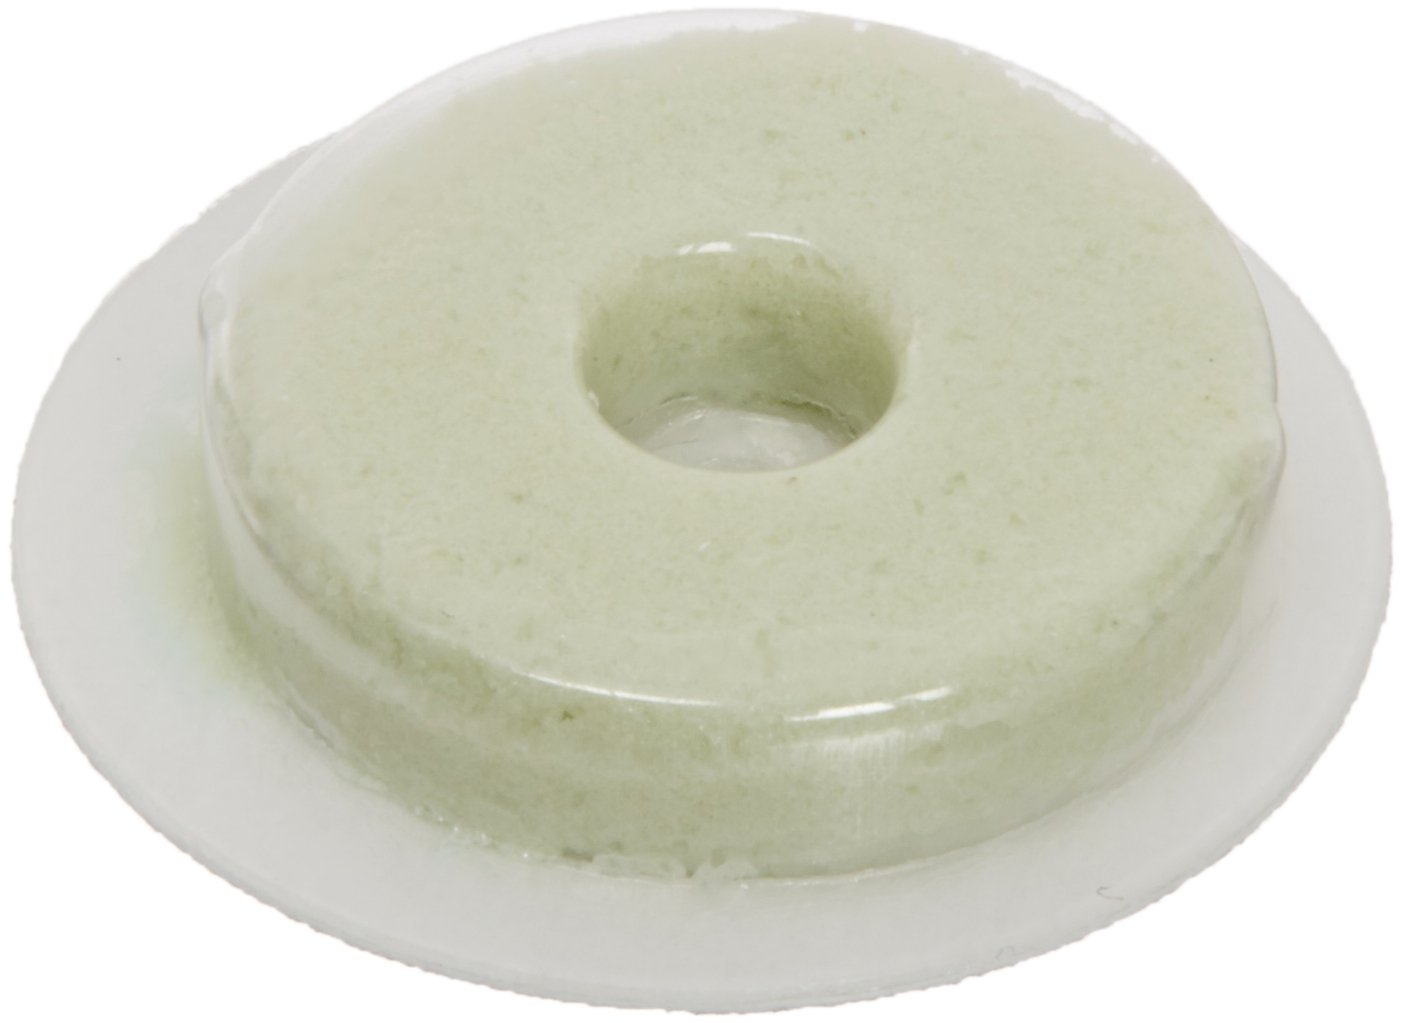 PDC Healthcare MM3005 Multi-Modality Skin Marker Reference Point for Radiology, MRI and CT 15 mm (Pack of 50)